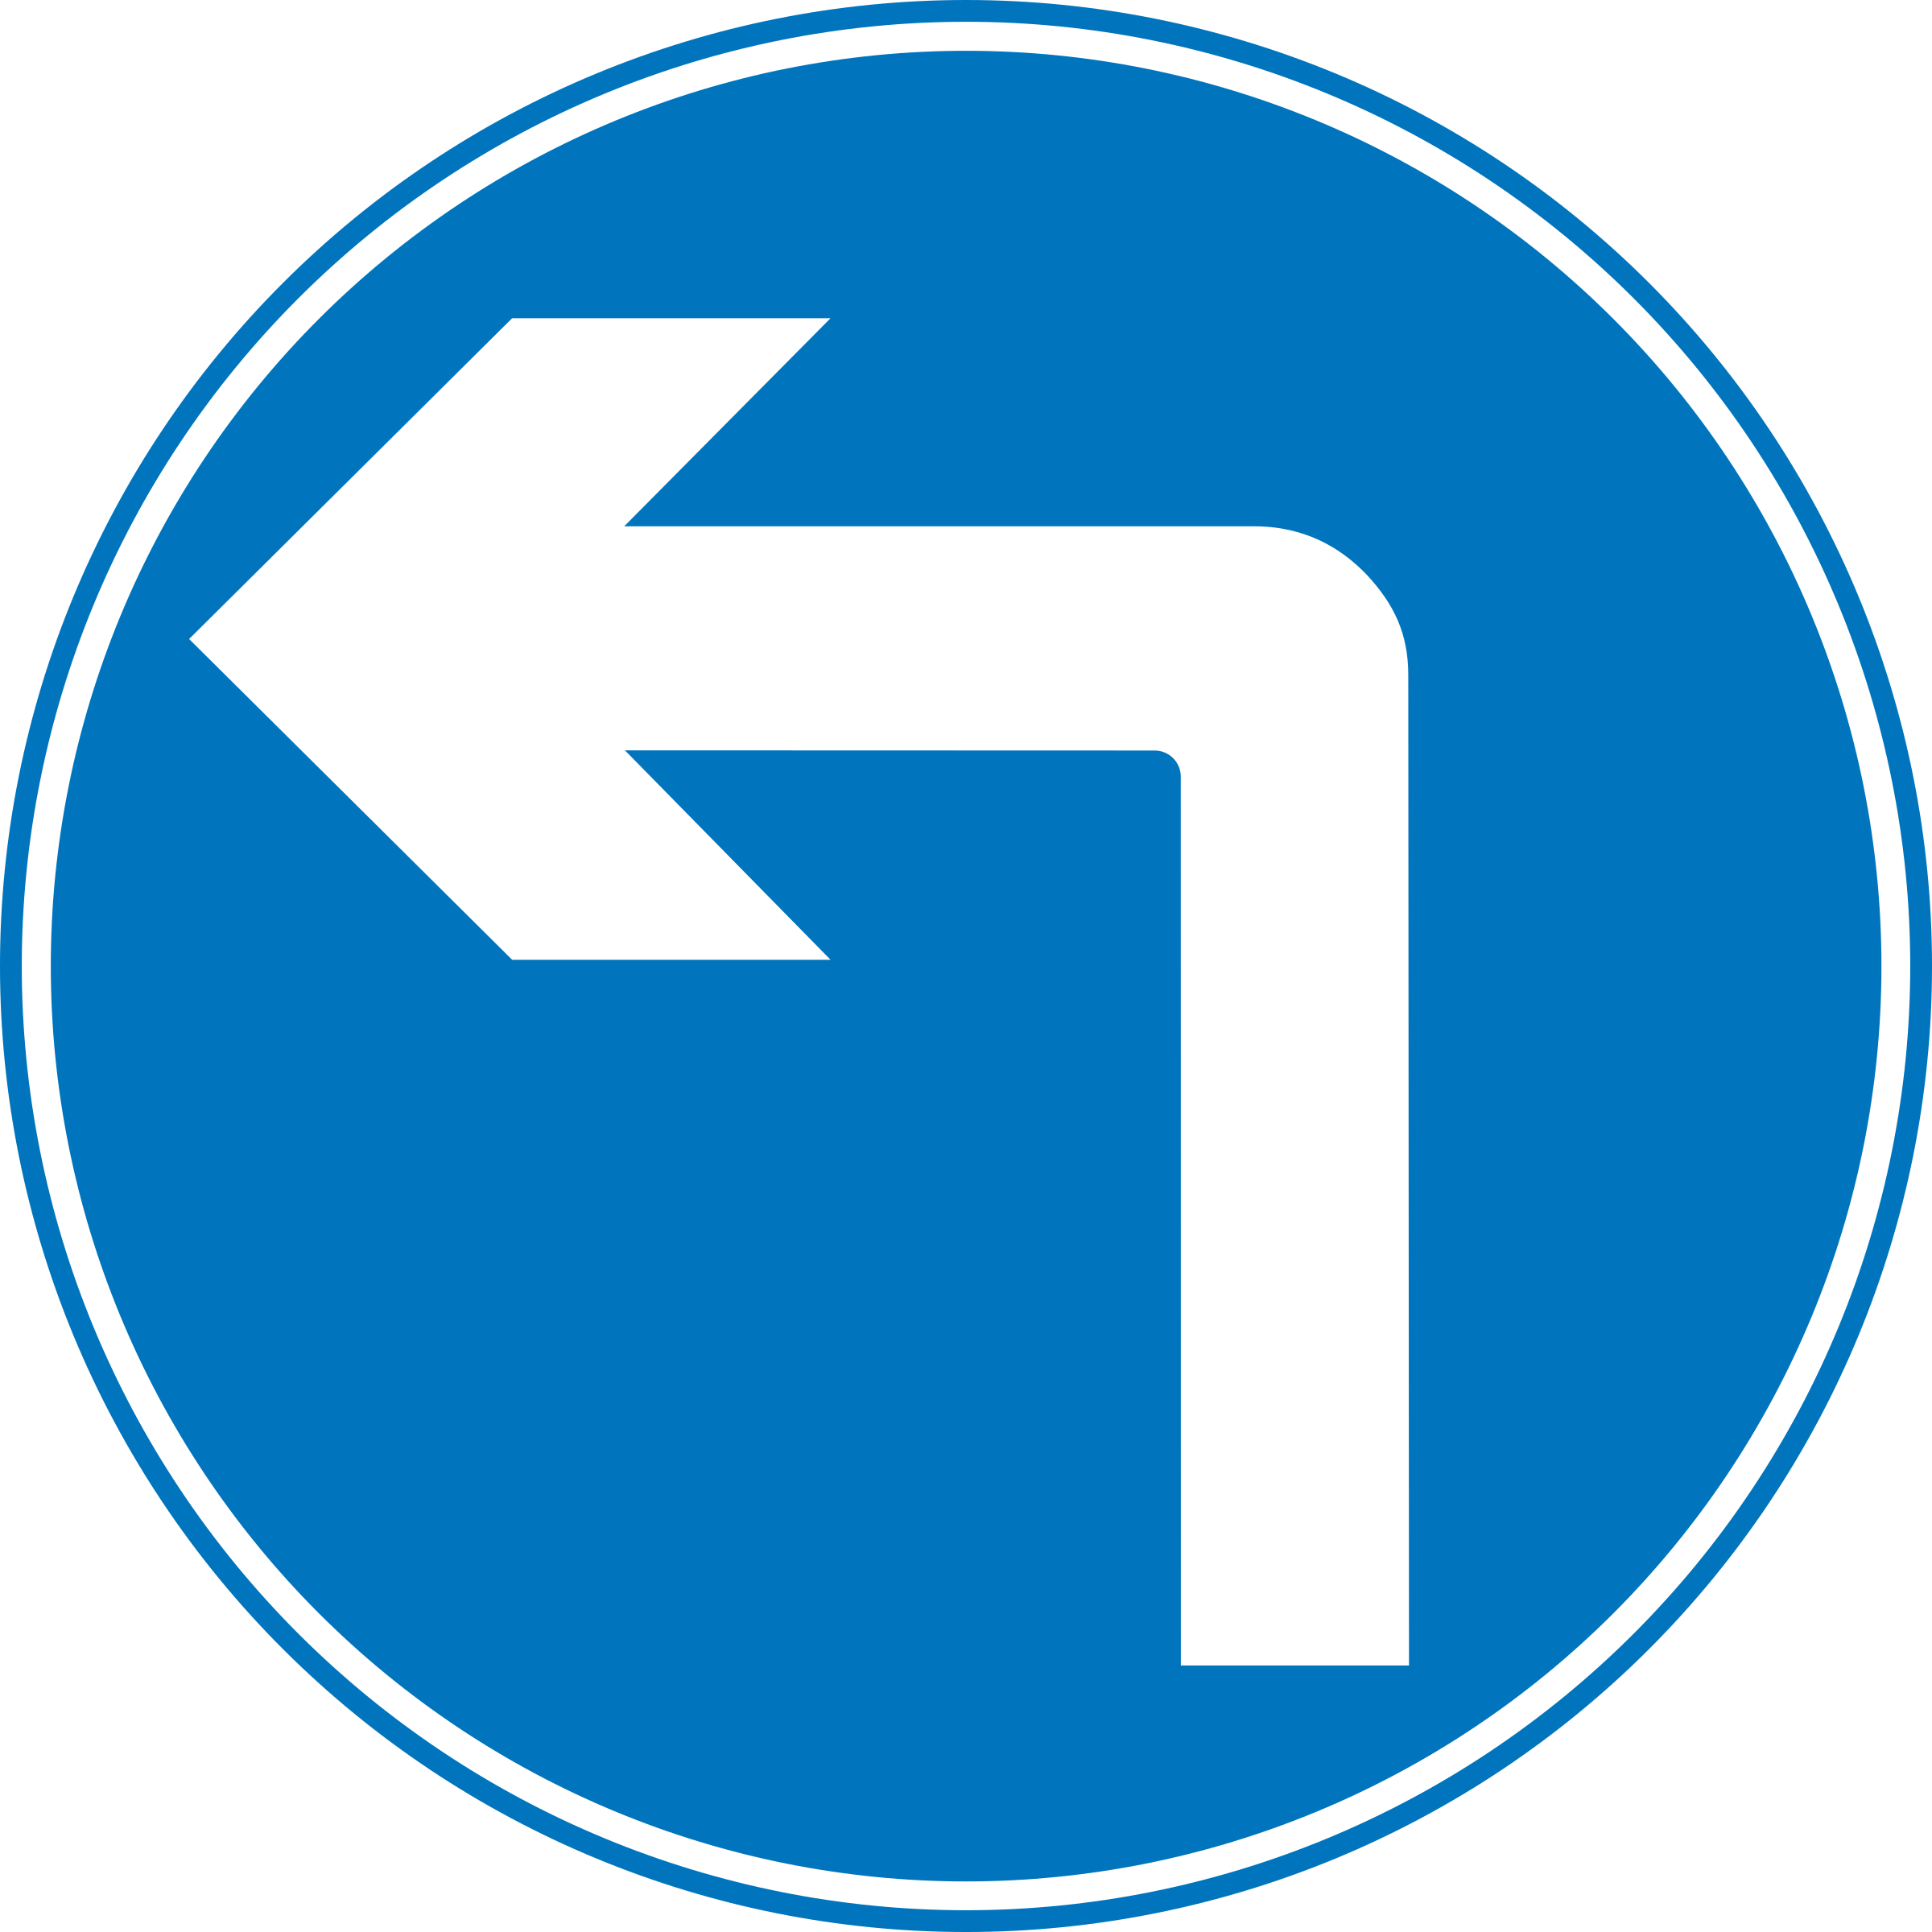 Roadsign turn ahead by Simarilius